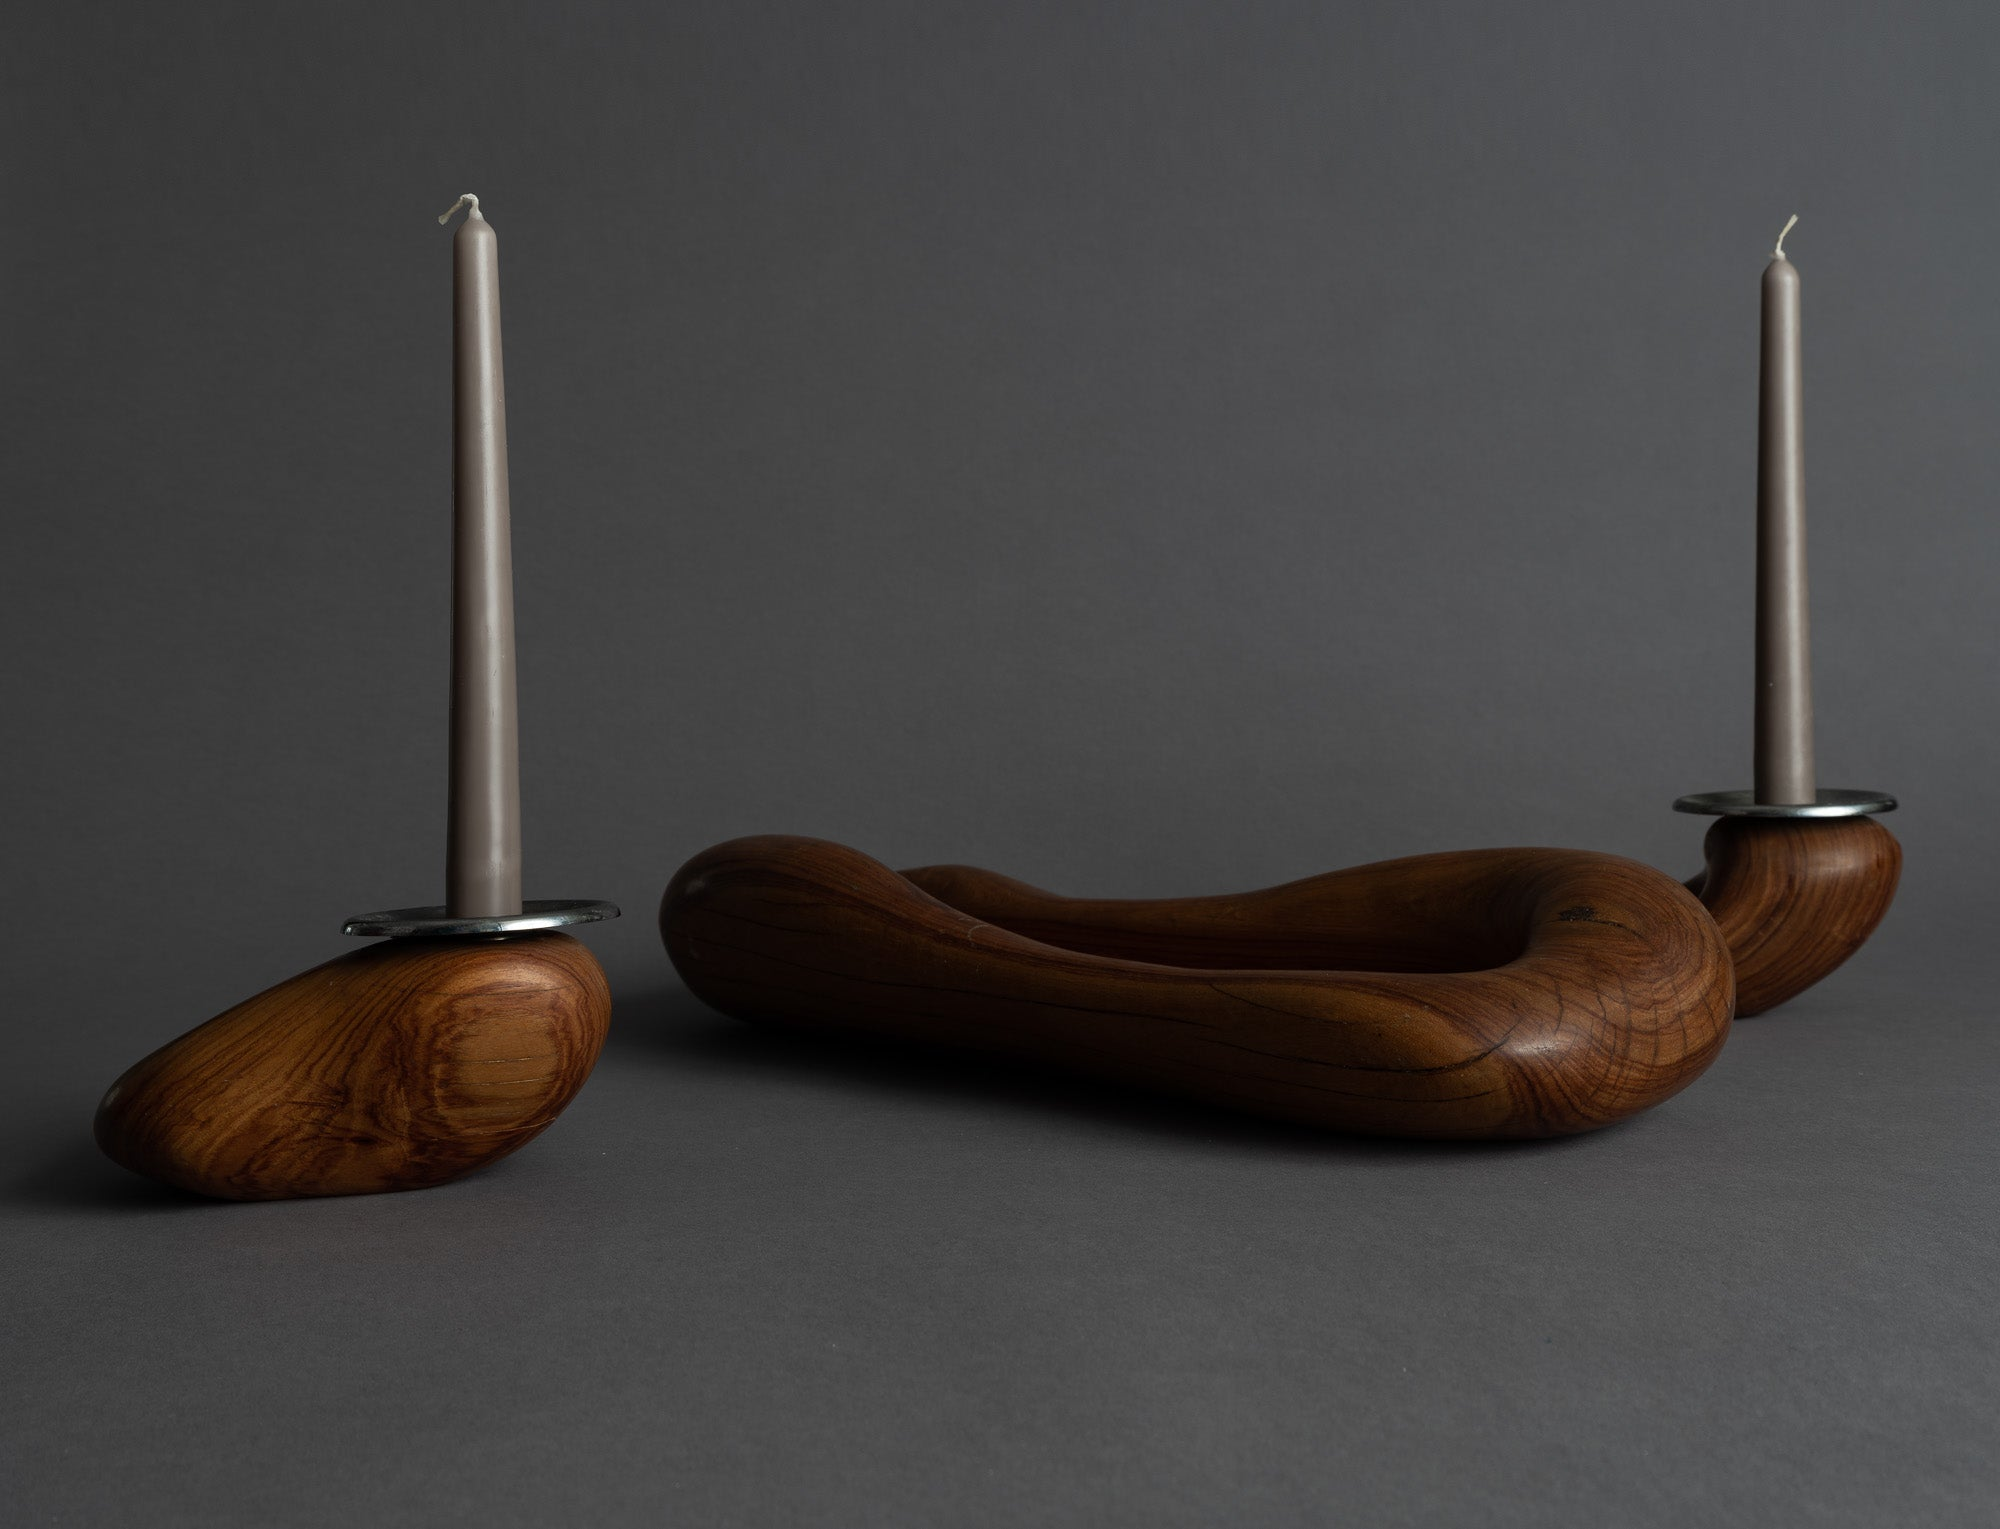 Rare garniture / centre de table de forme libre en palissandre monoxyle, France (vers 1955)..Rare Set of freeform carved rosewood bowls, France (circa 1955)